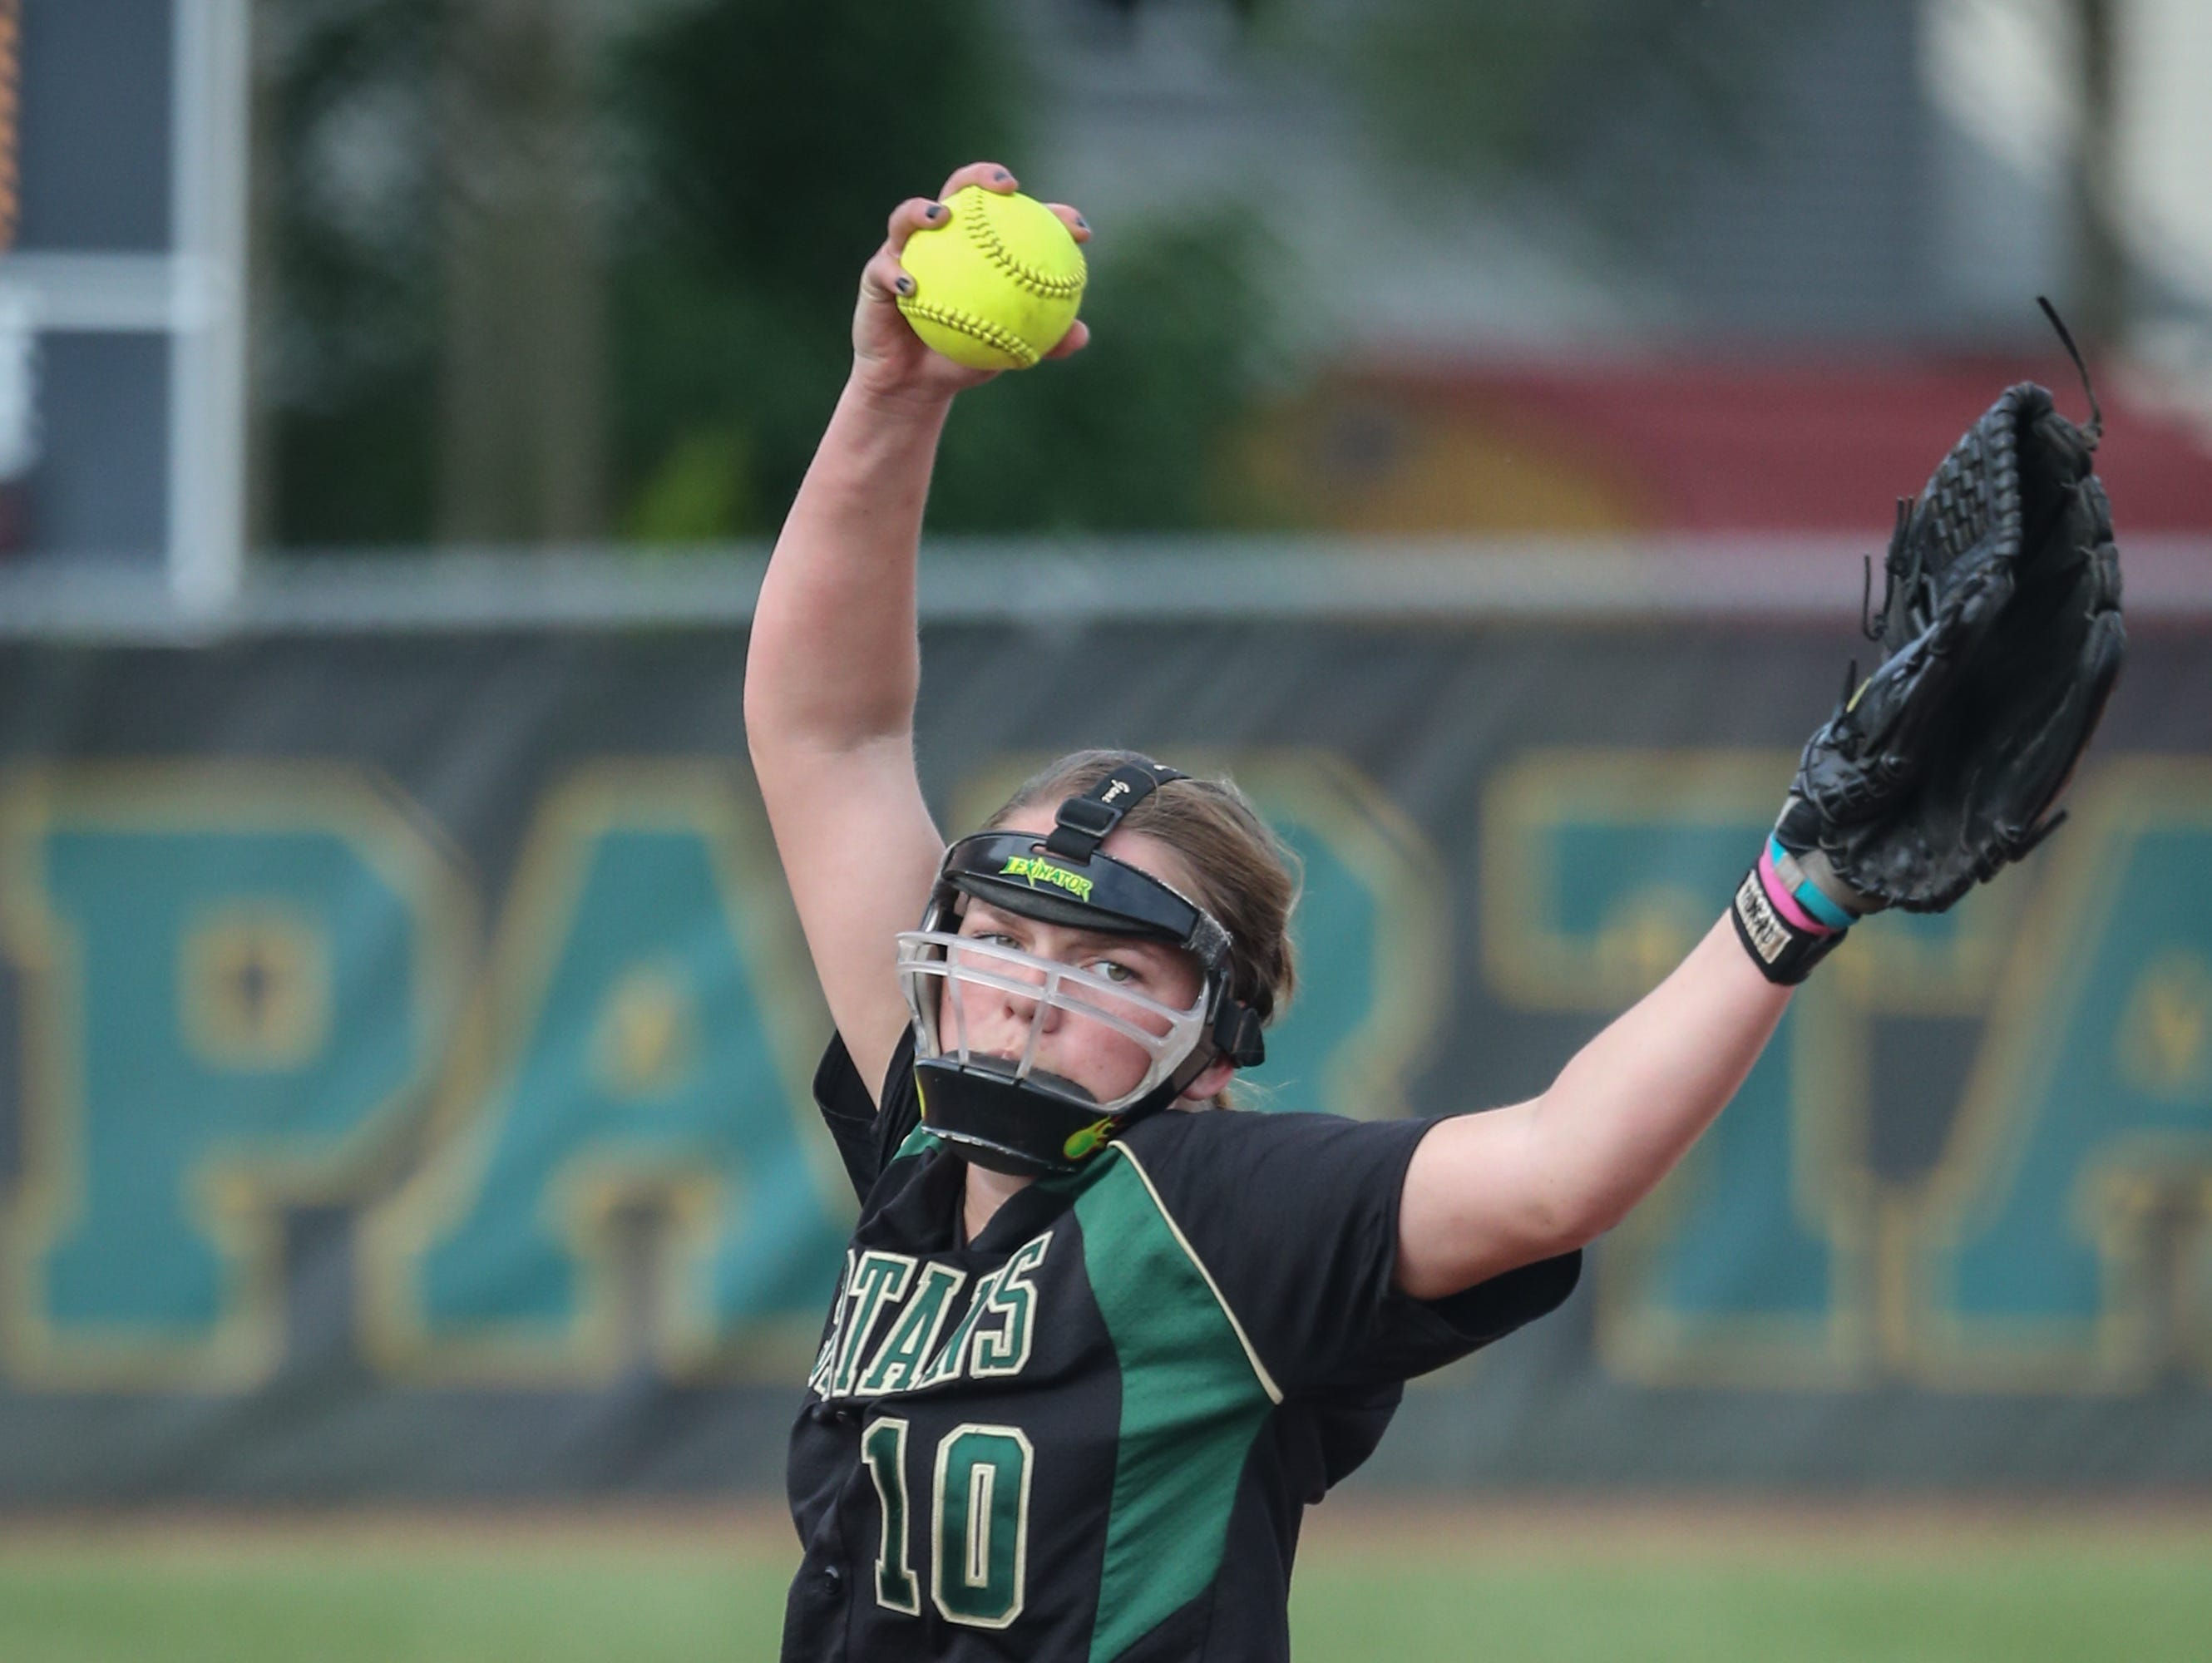 Oshkosh North pitcher Lexi Reetz (10) struck out 14 and allowed just two hits in leading the Spartans to a 7-1 win over Slinger in a WIAA Division 1 regional final on Friday.